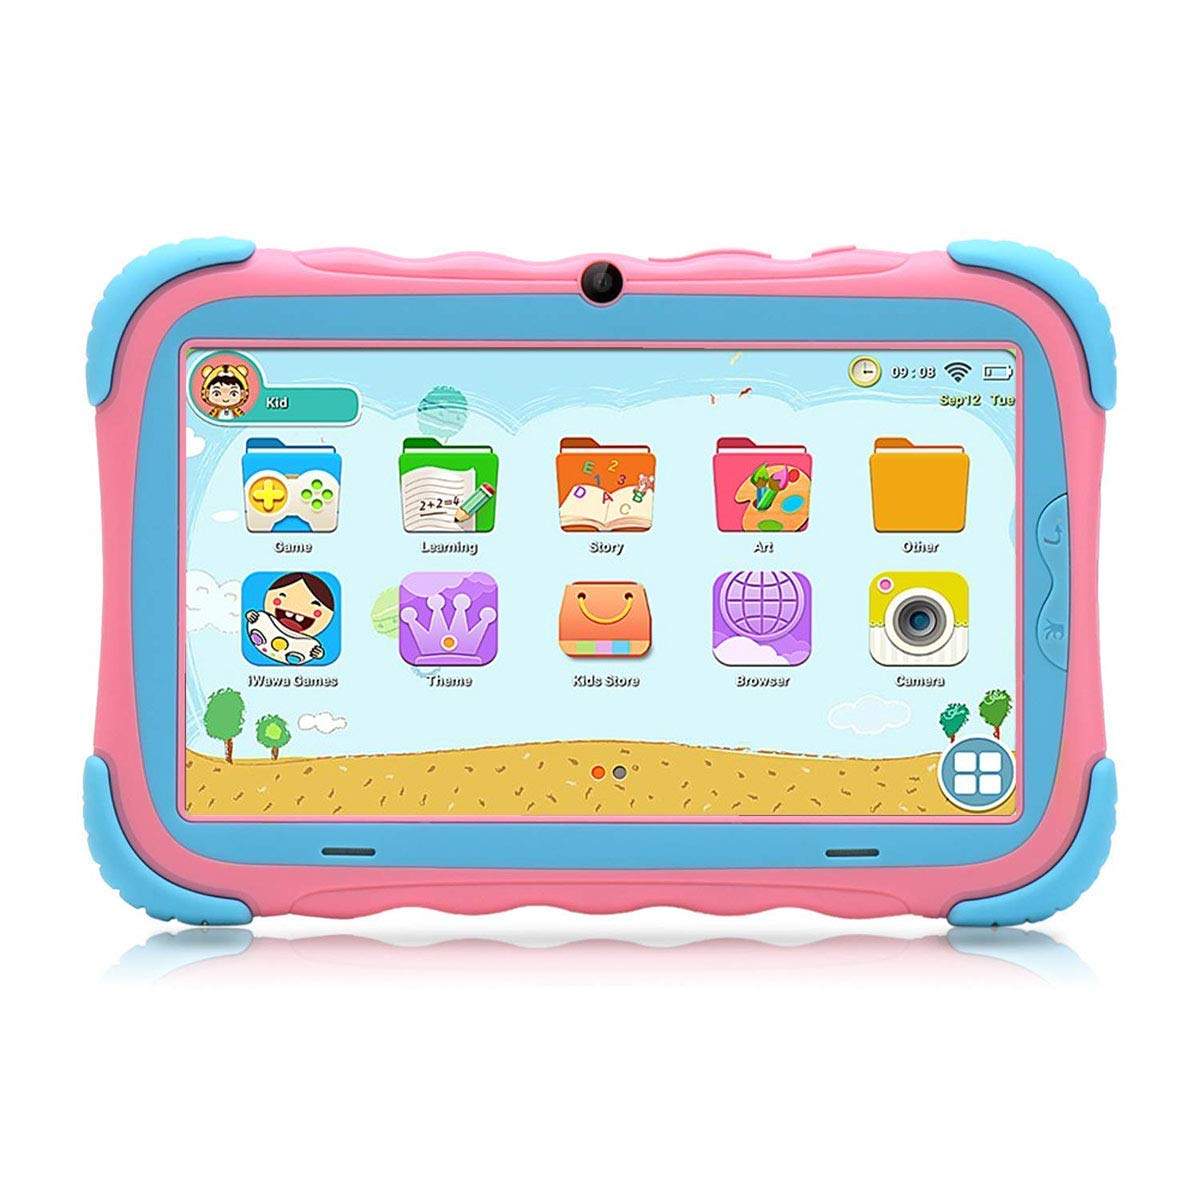 Tablet para Niños 7 Pulgadas Android 7.1 Quad Core 16GB Google Play Store Pantalla IPS HD WiFi Bluetooth y Doble Cámara Certificación Babypad GMS ...